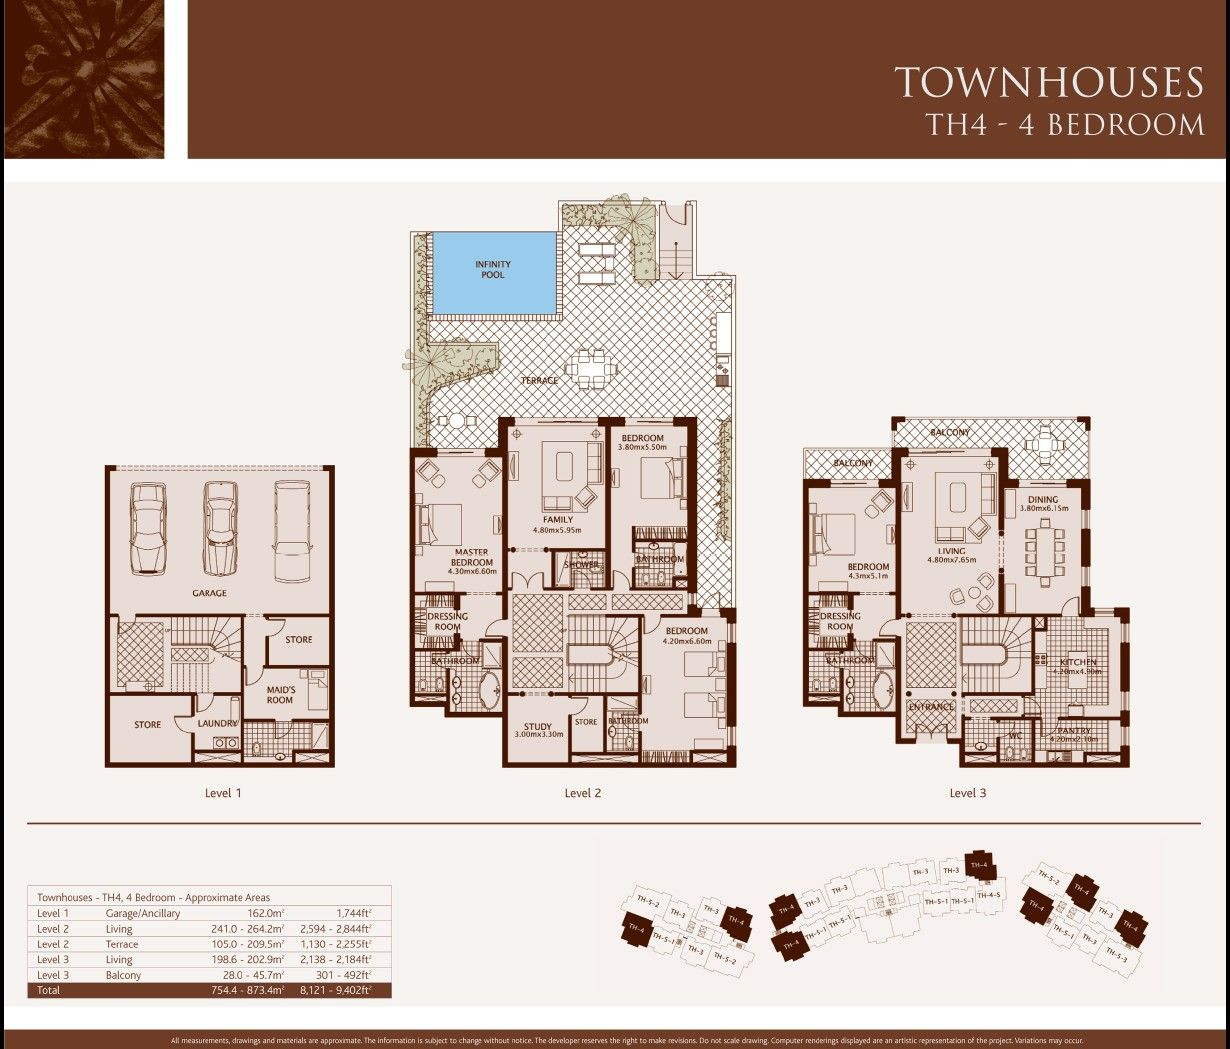 Fresh townhouse floorplans cool home design contemporary for Contemporary townhouse plans